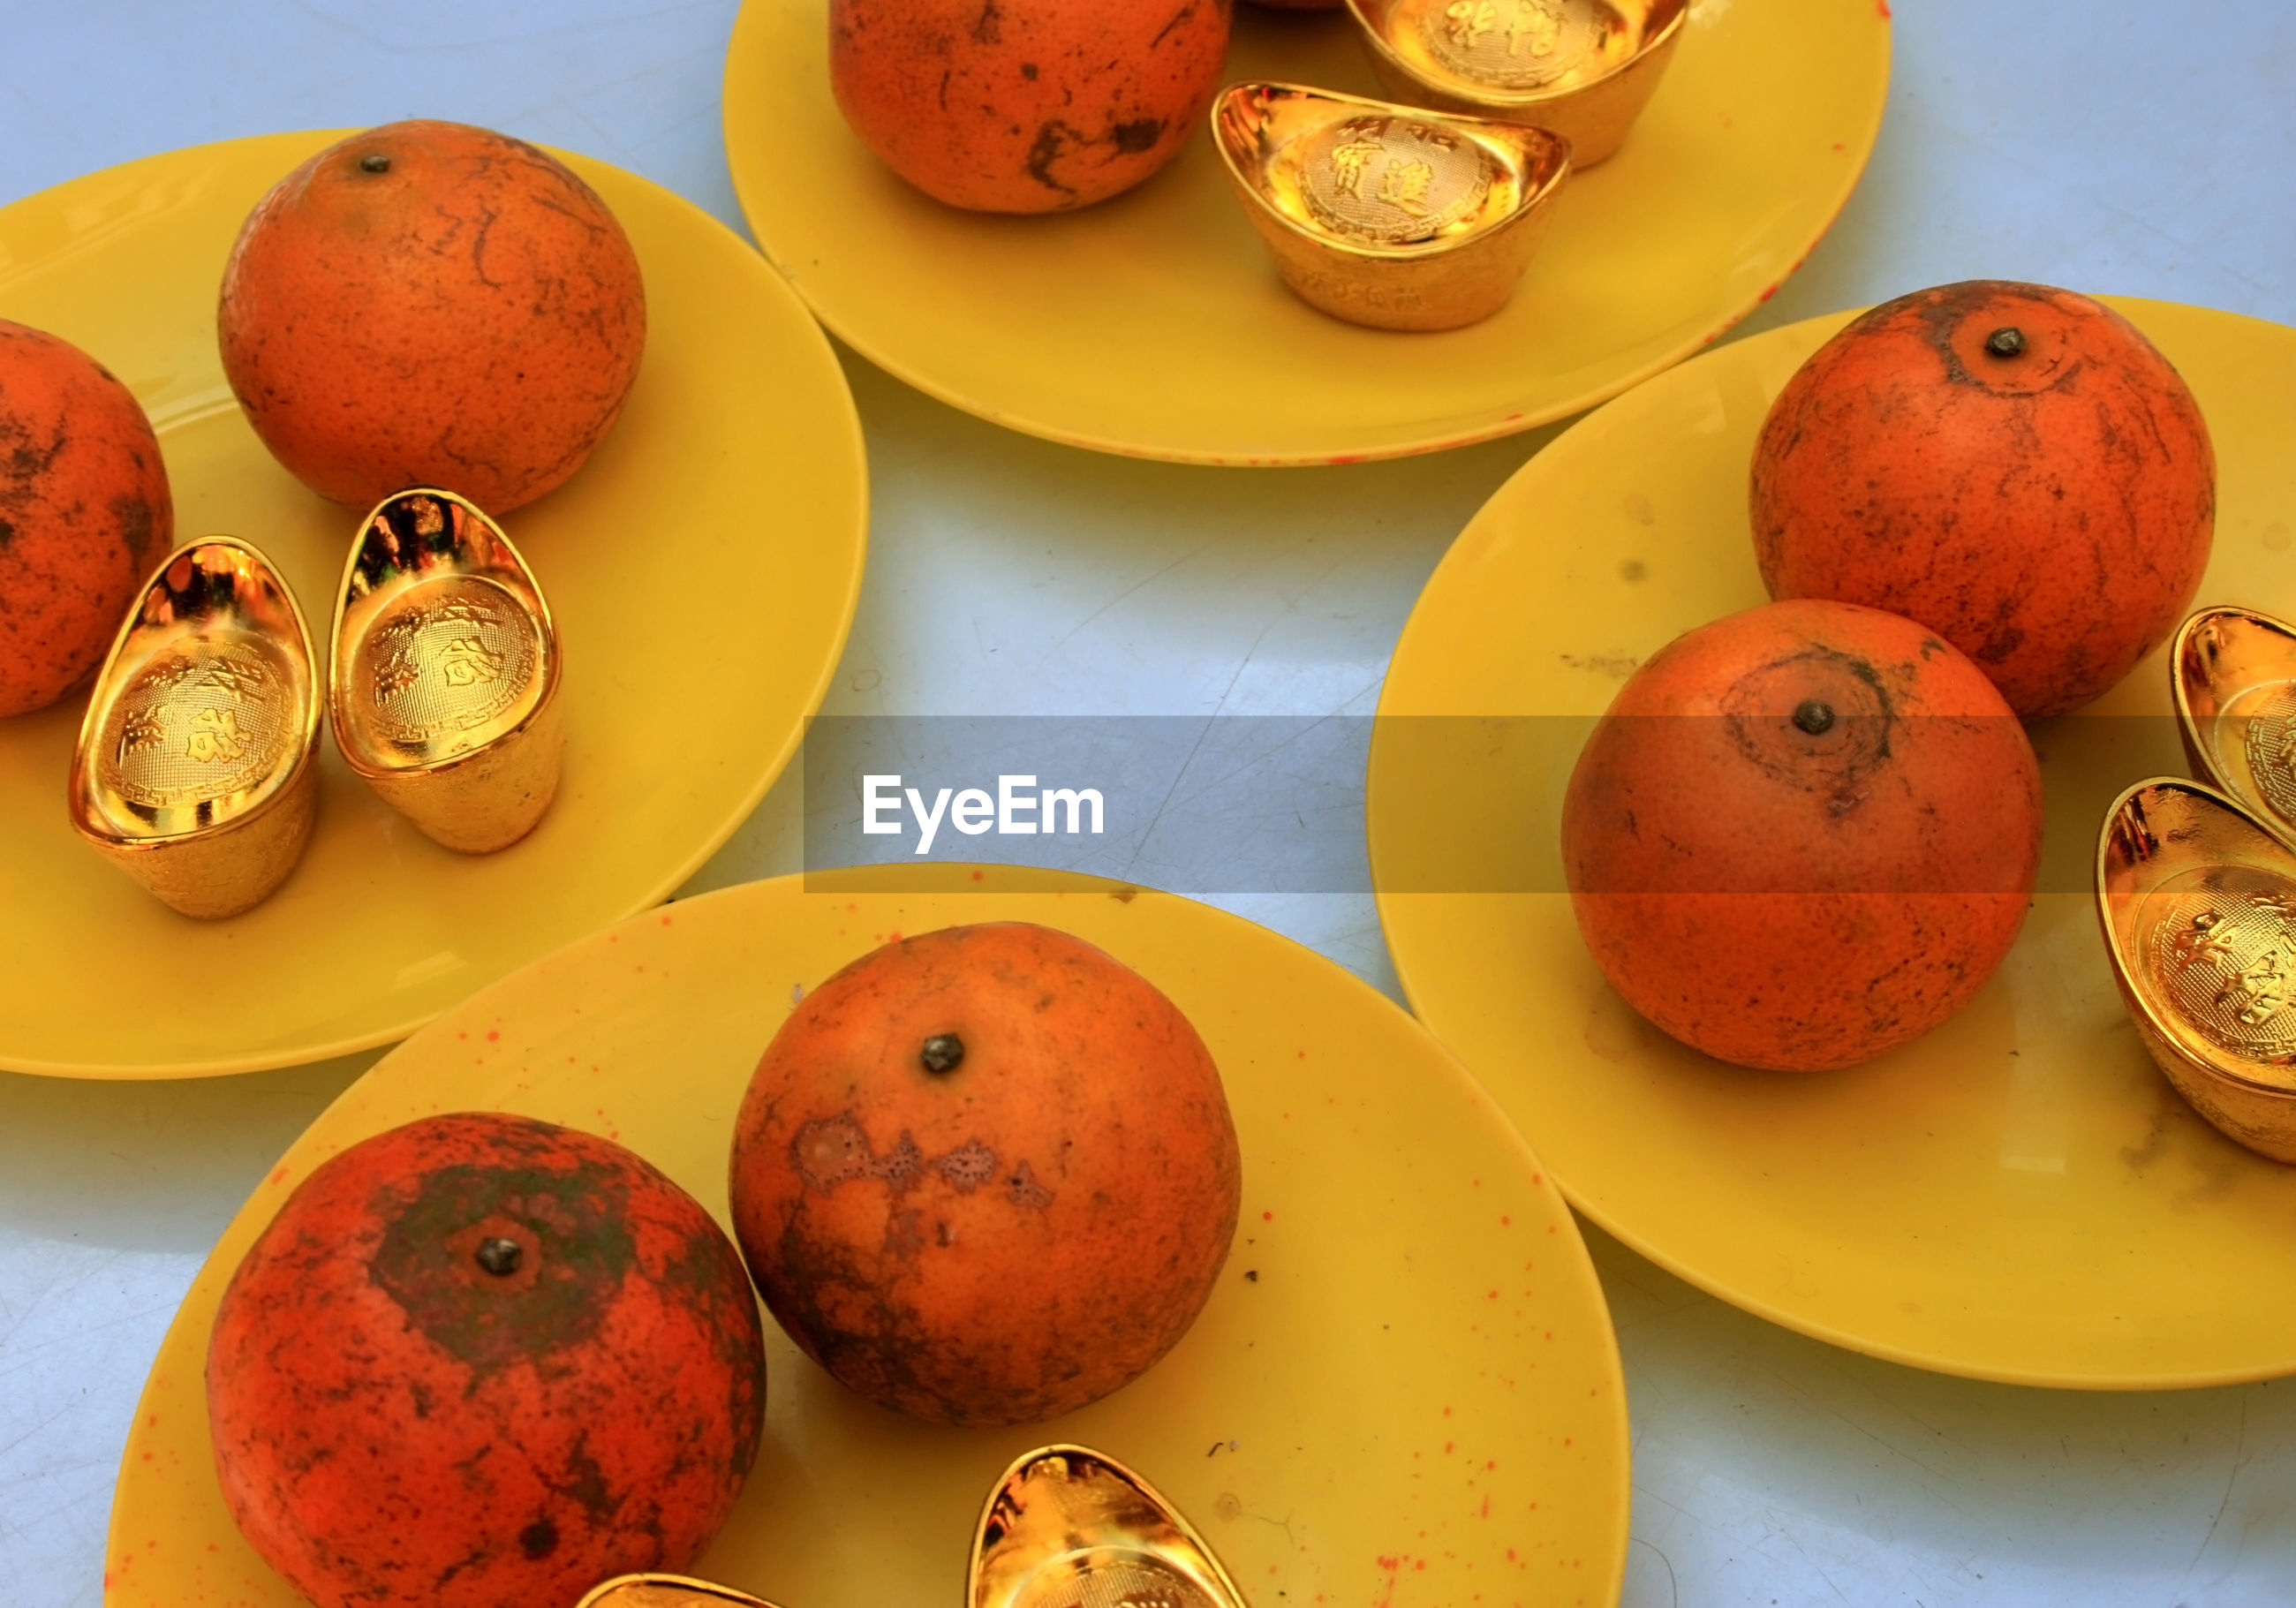 HIGH ANGLE VIEW OF VARIOUS FRUITS IN PLATE ON TABLE